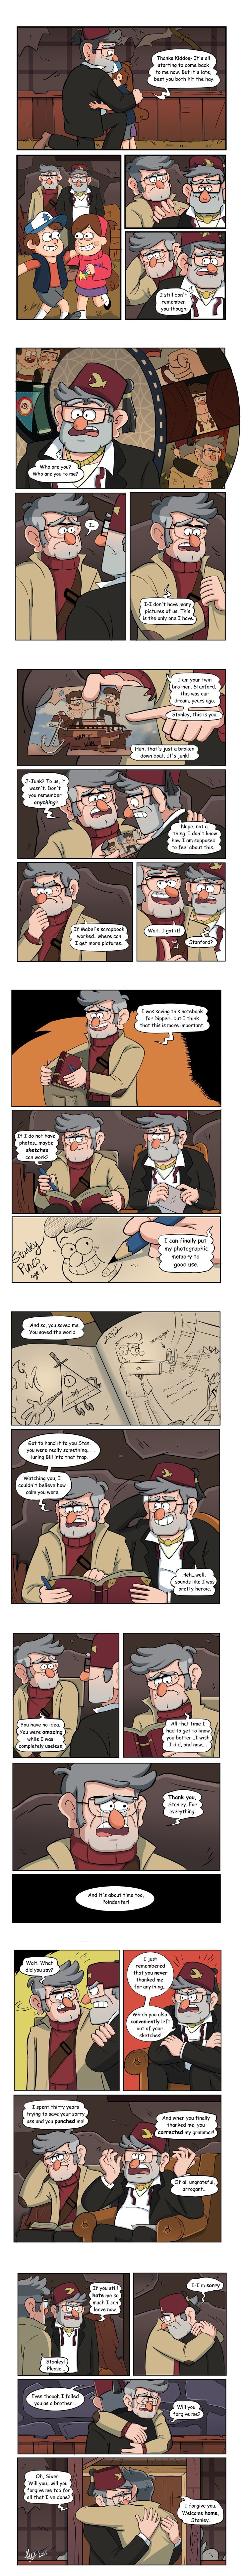 Memories  Finally finished the comic! When Stan can't remember Ford, Ford is forced to get creative. Sometimes, a little gratitude goes a long way.